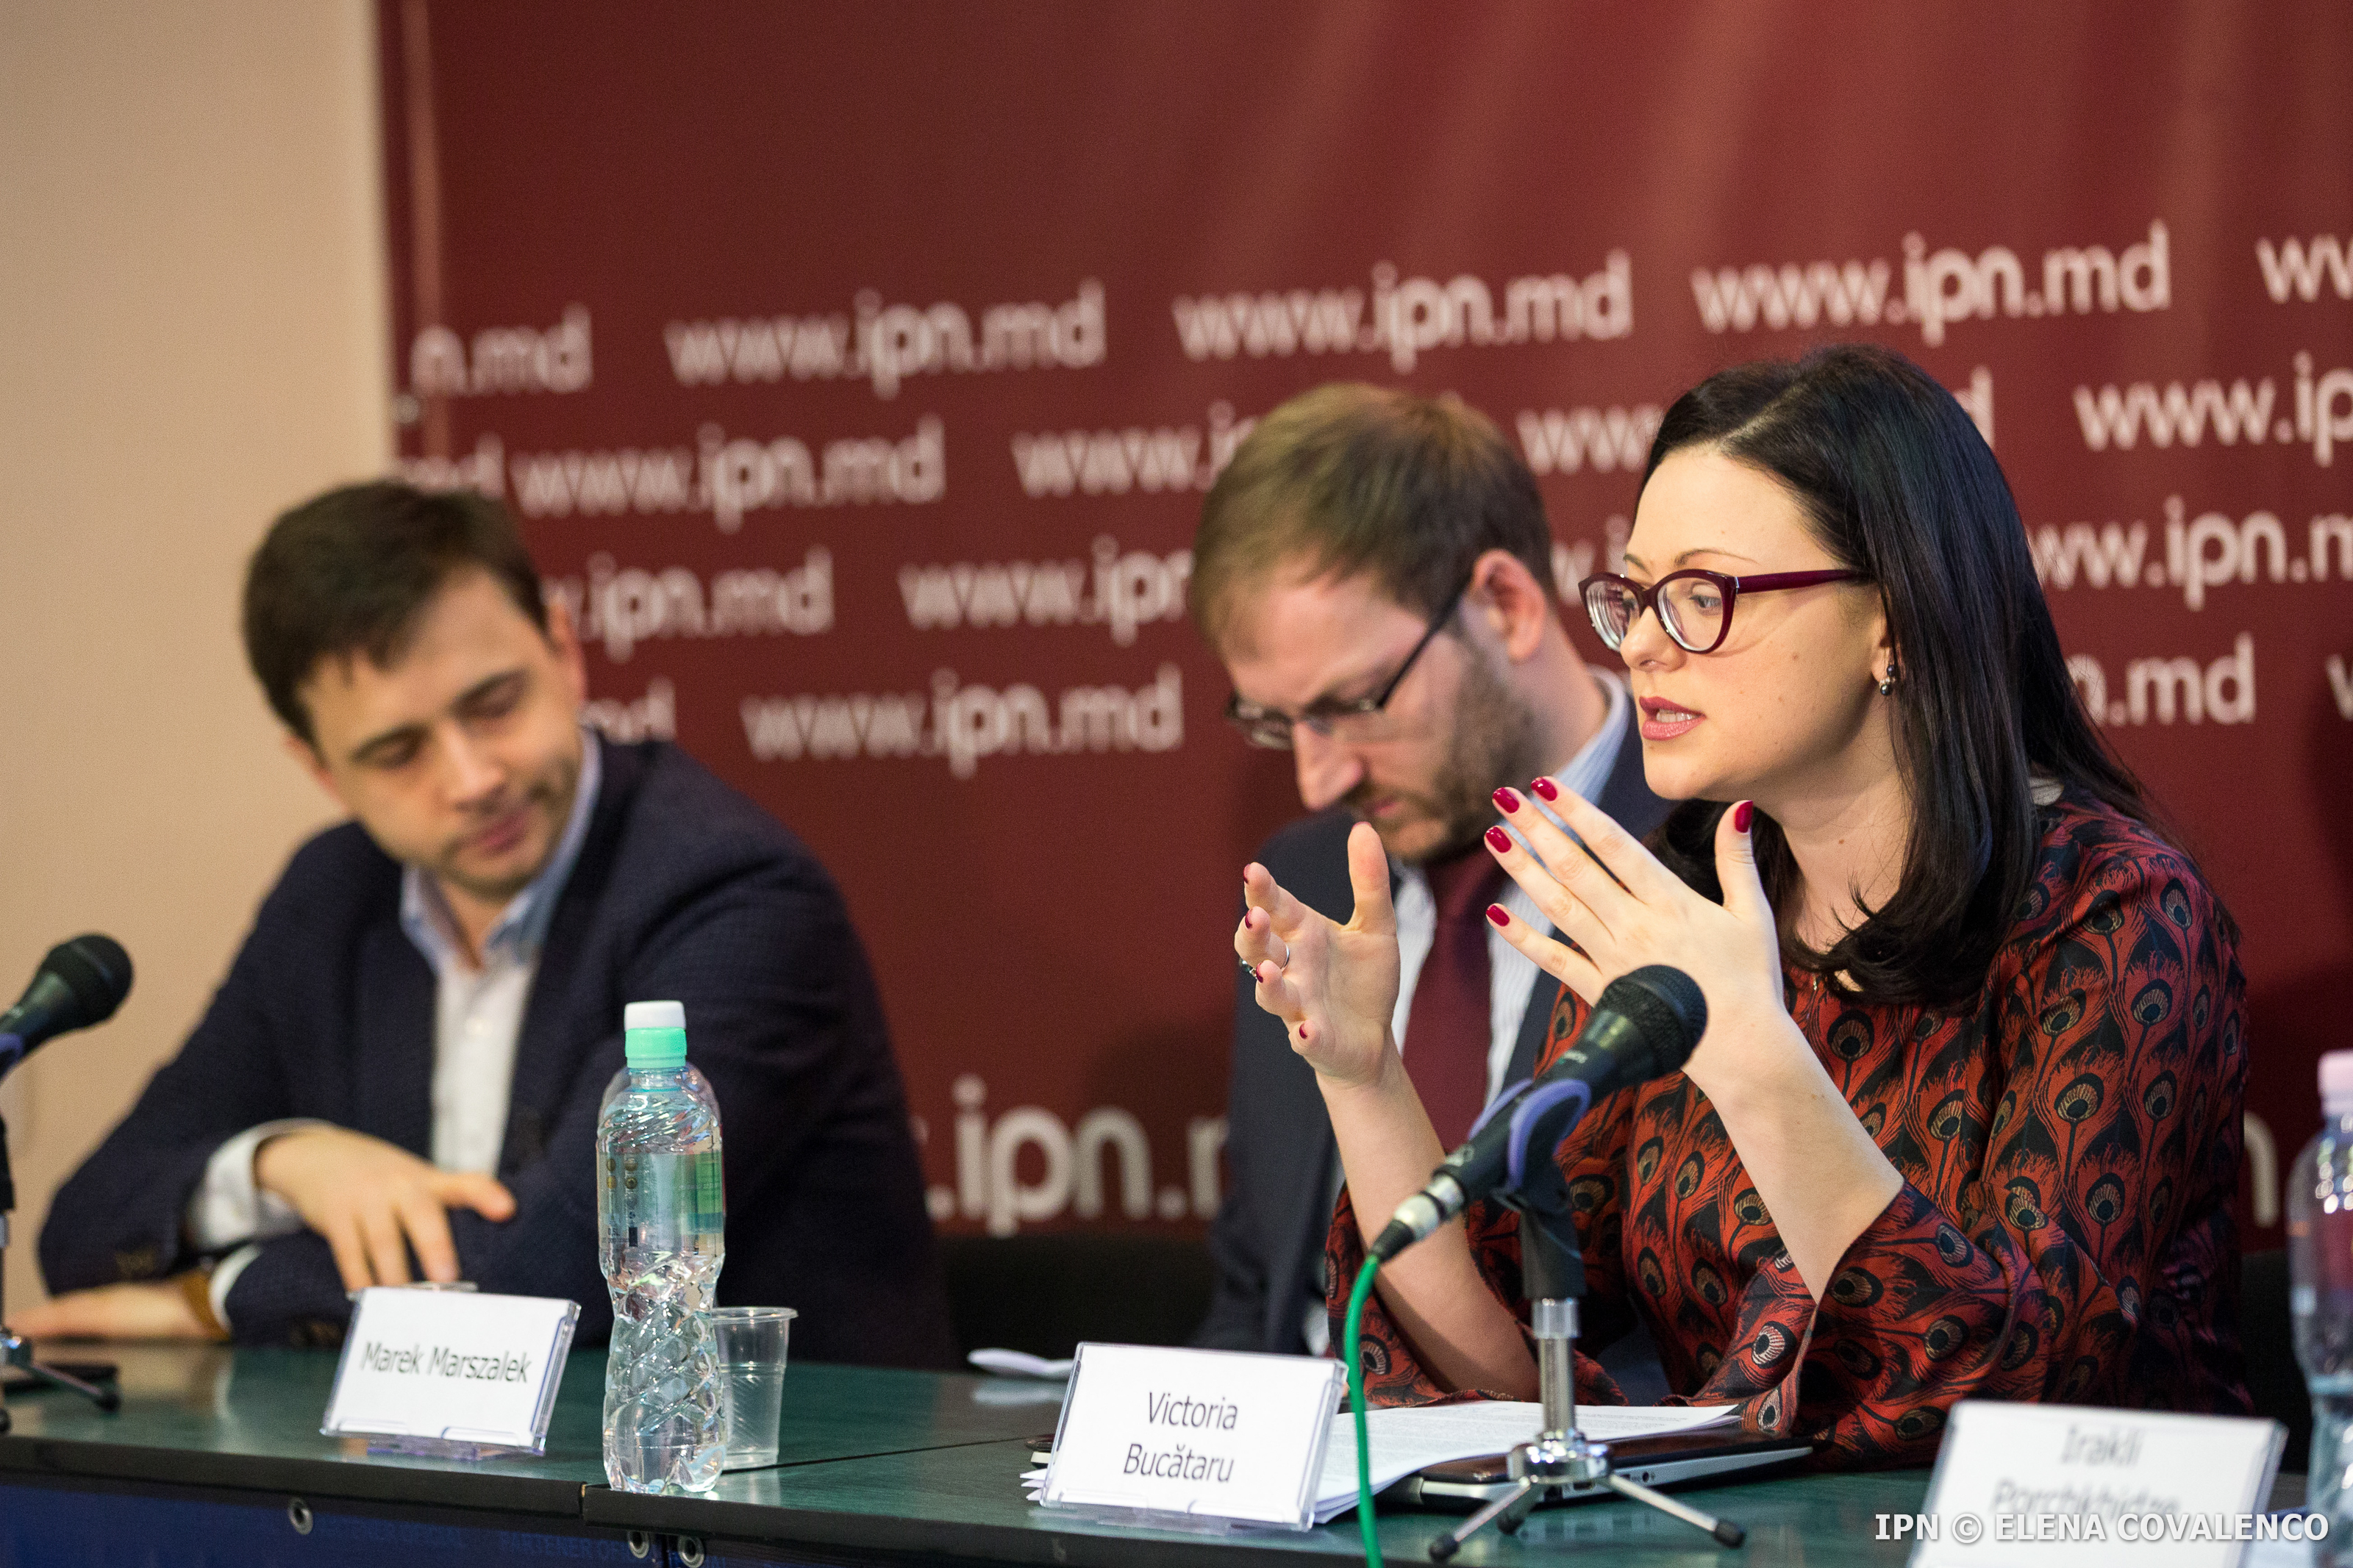 Ape defective communication on european course generates greater though the european association of moldova is one of the main foreign policy courses opinion polls show the popularity of the european integration idea publicscrutiny Choice Image